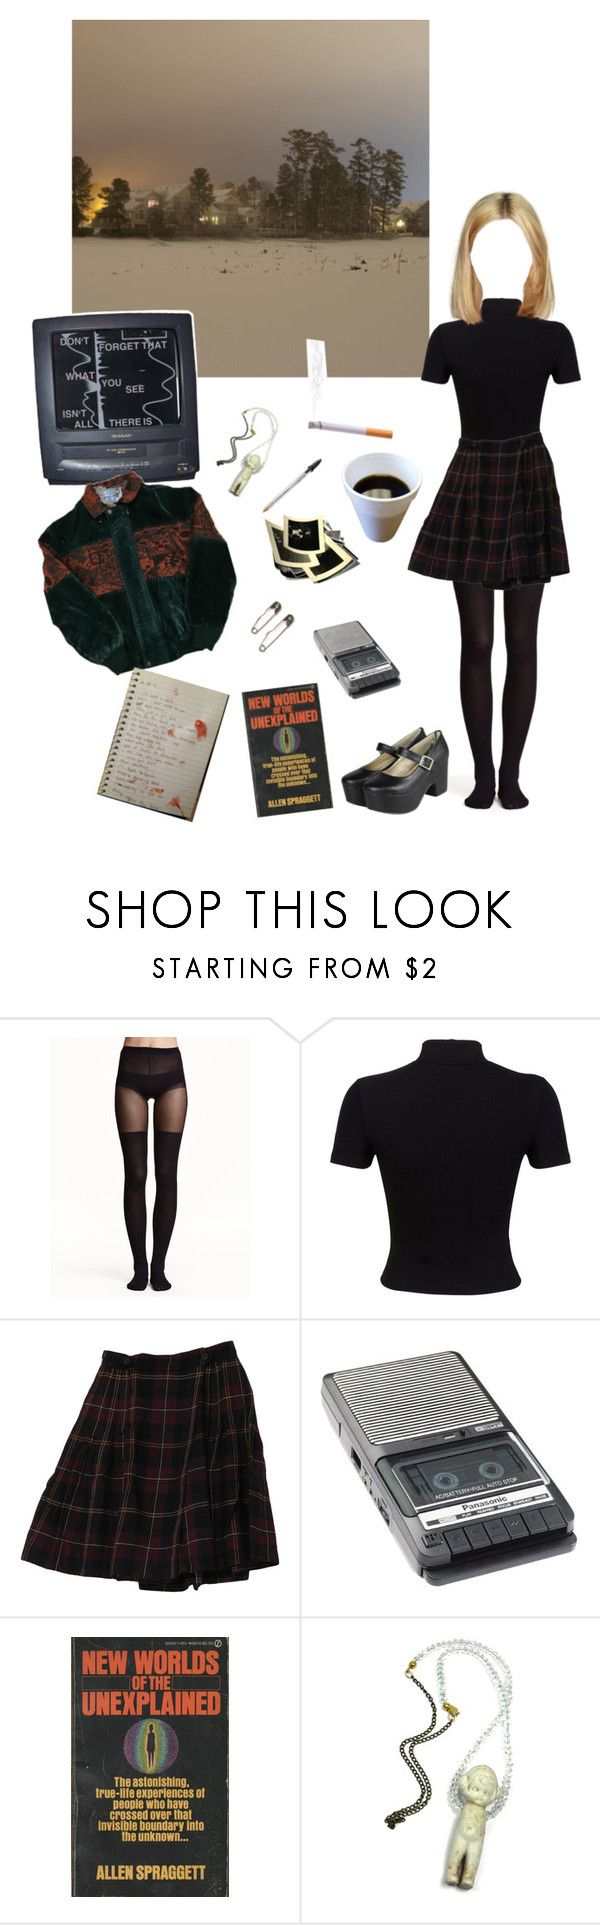 """""""Twin peaks theme"""" by sweetaquarius ❤ liked on Polyvore featuring Rick Owens Lilies, H&M, Miss Selfridge, Rena Rowan, Panasonic and Eclectic Shock"""